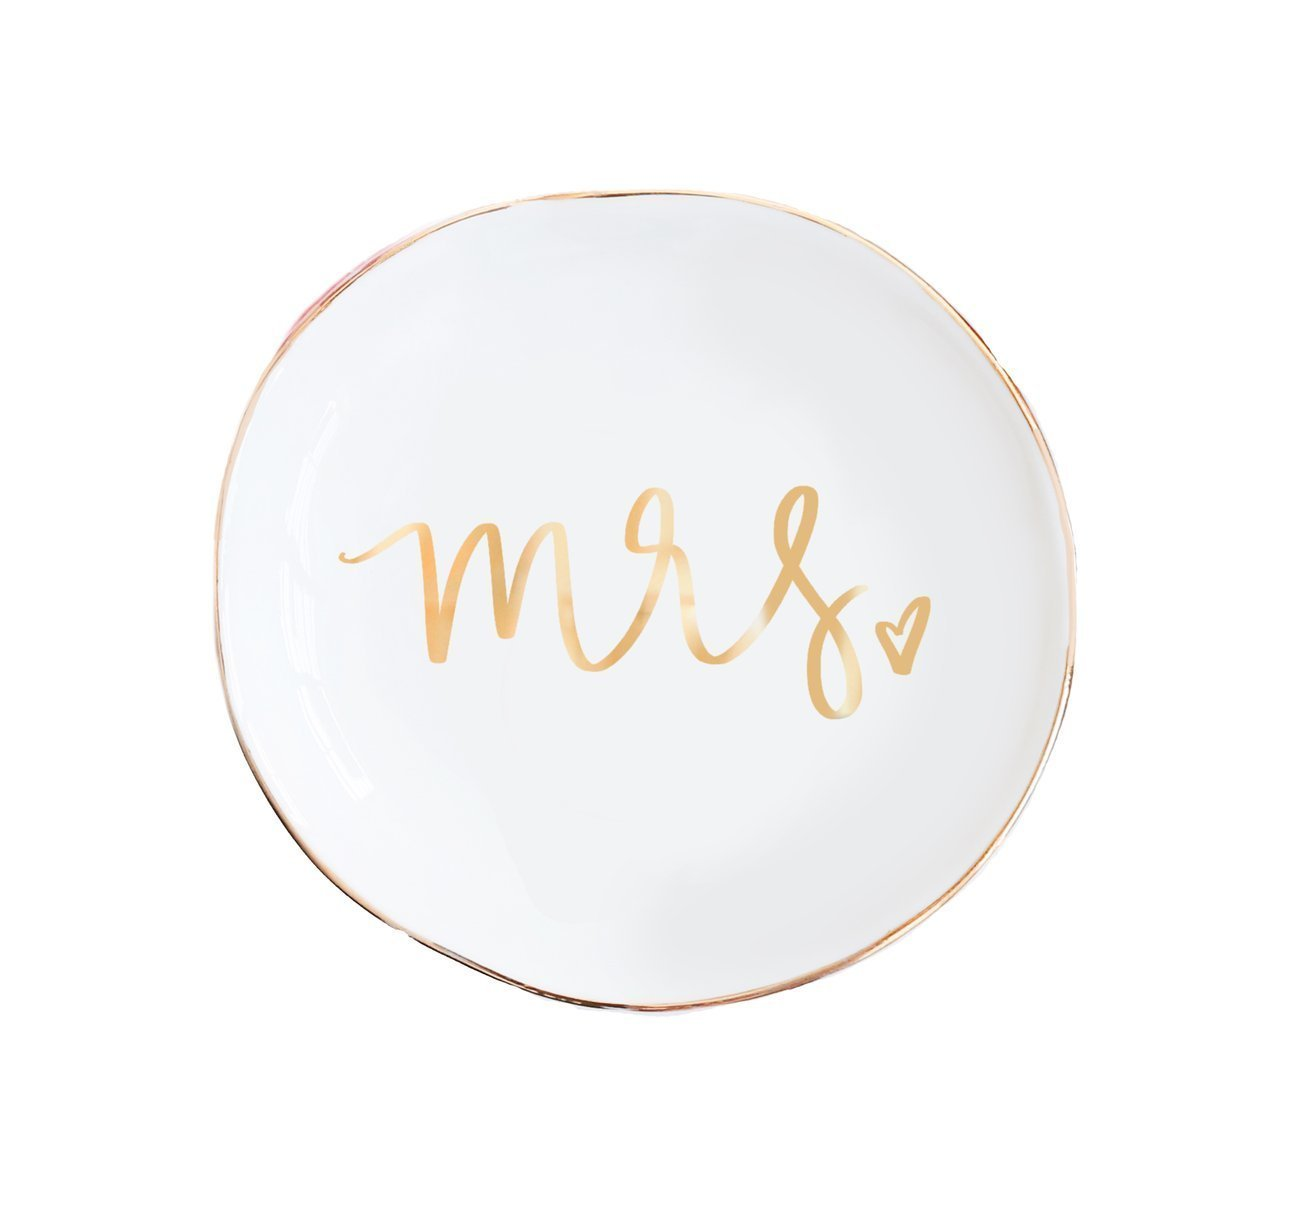 Mrs Jewelry Dish | Small Gold Ceramic Ring Trinket Tray Wedding Gift for Bride Wifey Desk Storage Accessories Miss Office Decor Hand Lettered